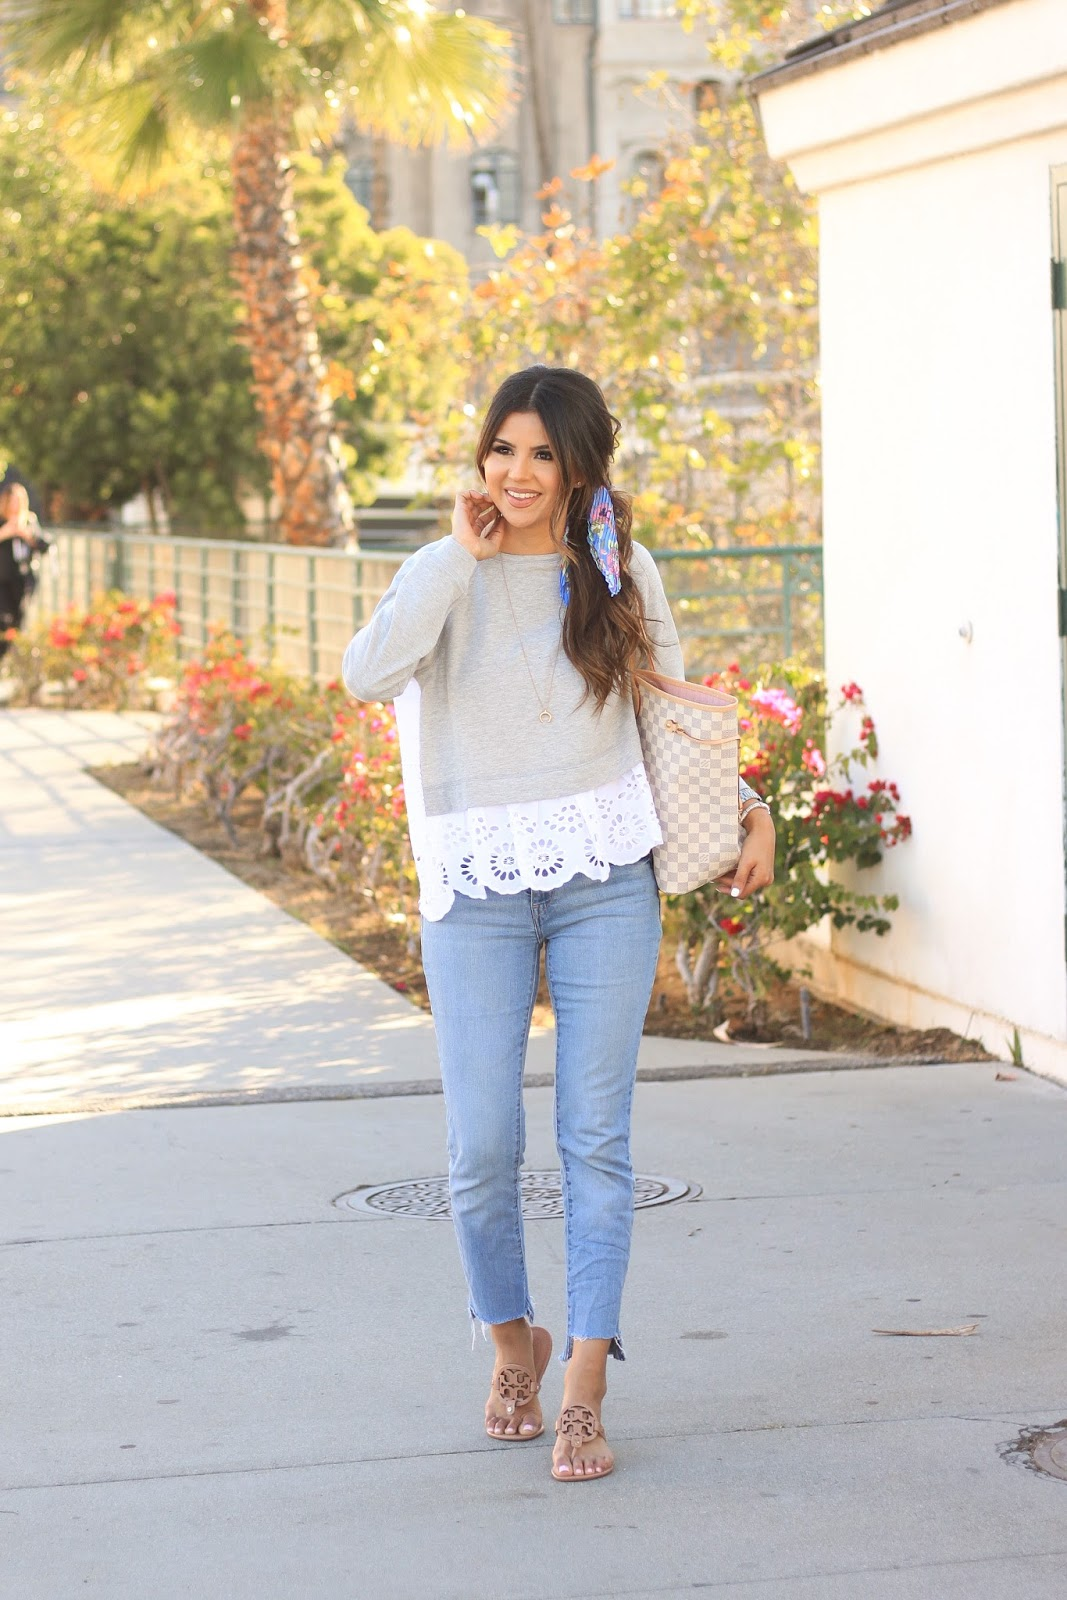 Cute Spring Style in Levis, Tory Burch Miller sandals and eyelet sweatshirt